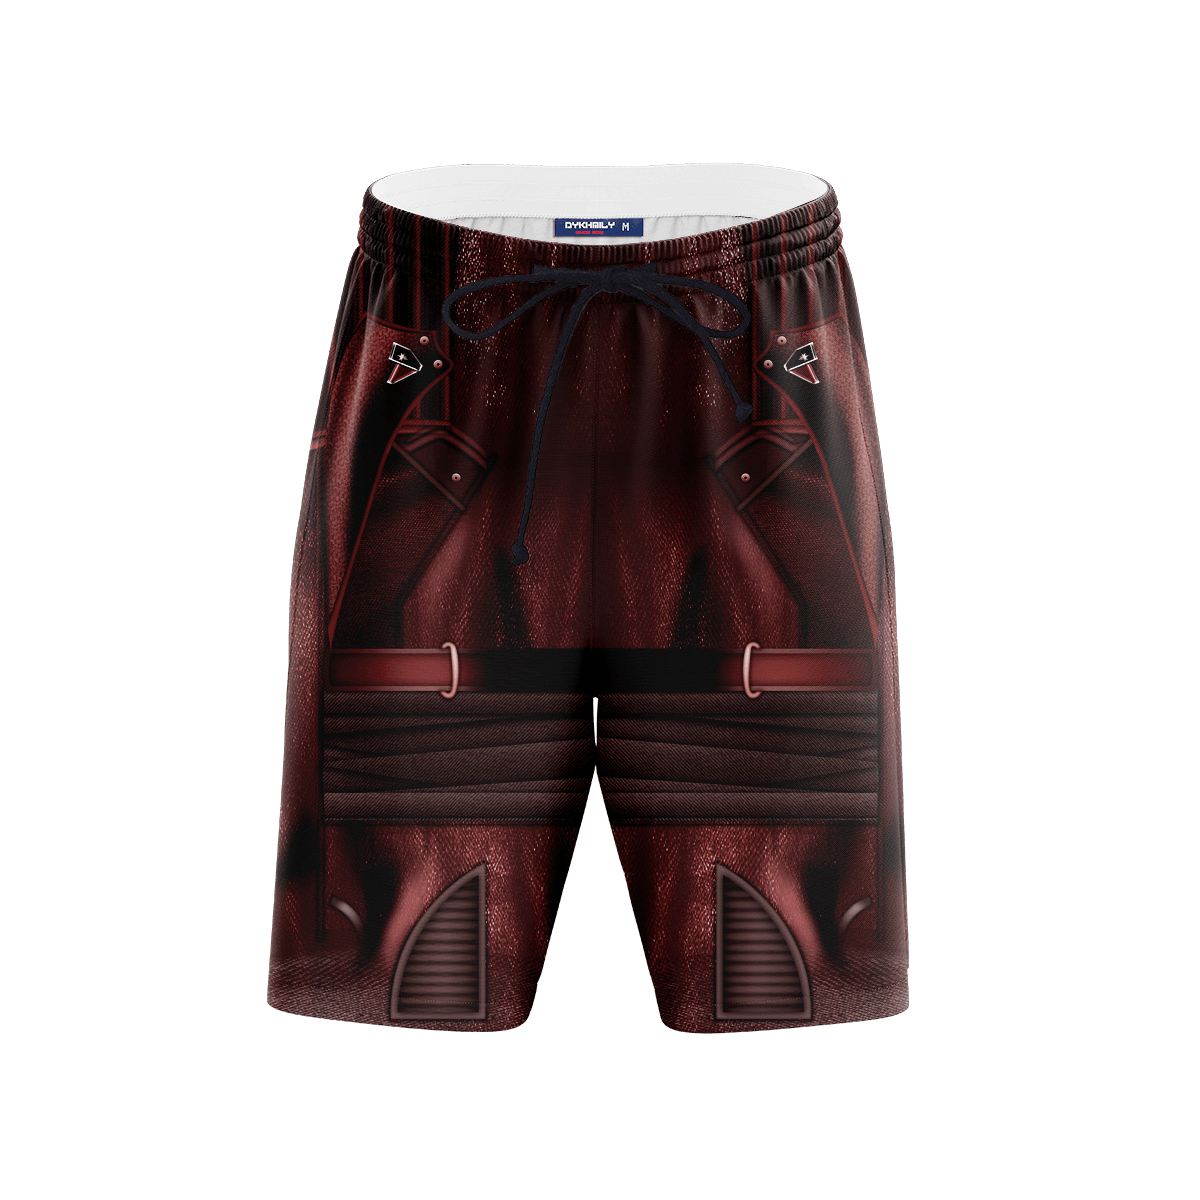 Starlord Beach Shorts FDM3107 S Official Anime Swimsuit Merch